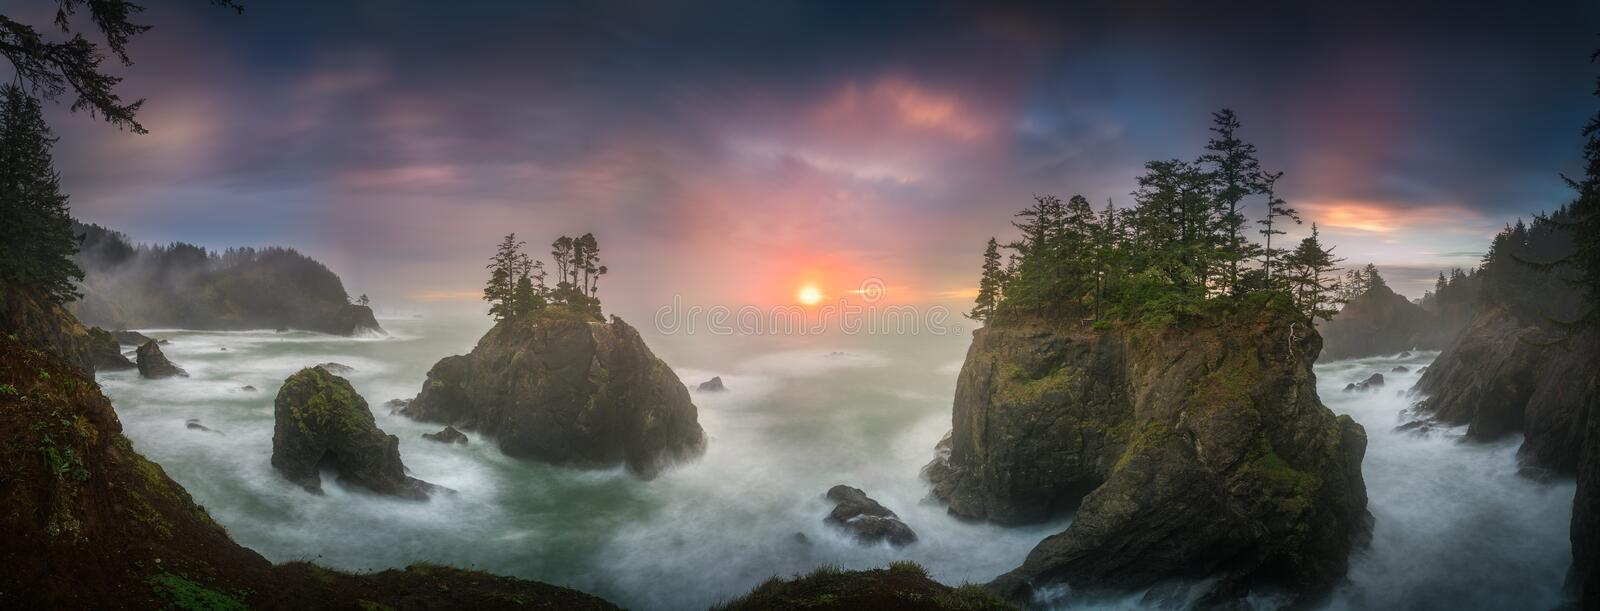 Sunset between Sea stacks with trees of Oregon coast. This is a photograph of big sea stacks with trees of Oregon coast taken at sunset hour stock images